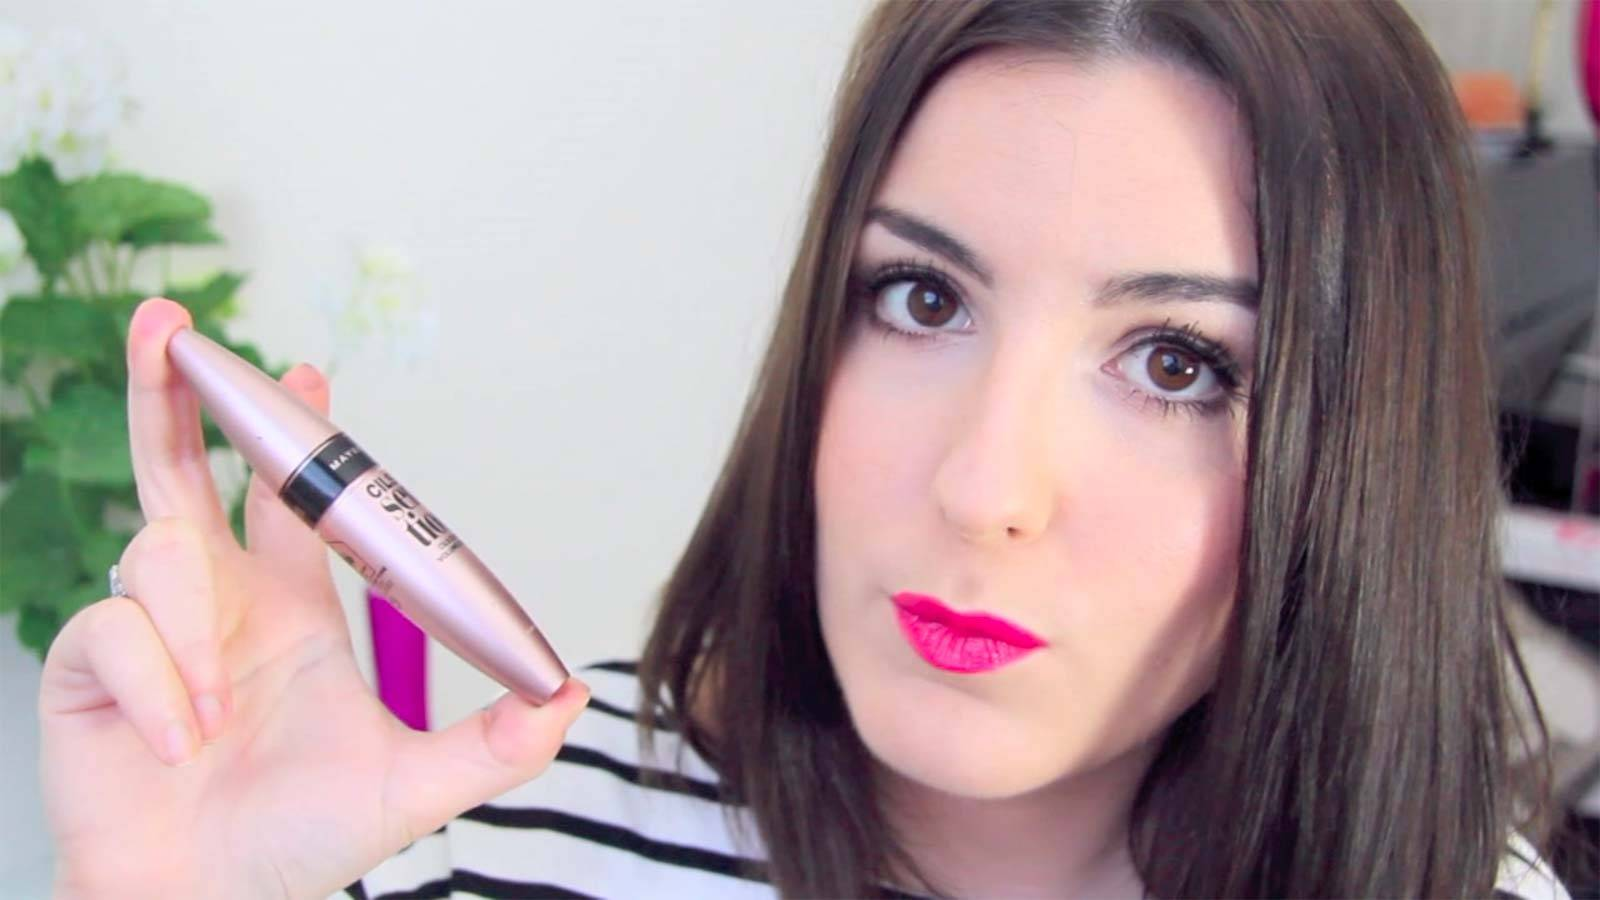 maybelline-mascara-cils-sensational-vu-par-mamzelle-sooz-video-16x9